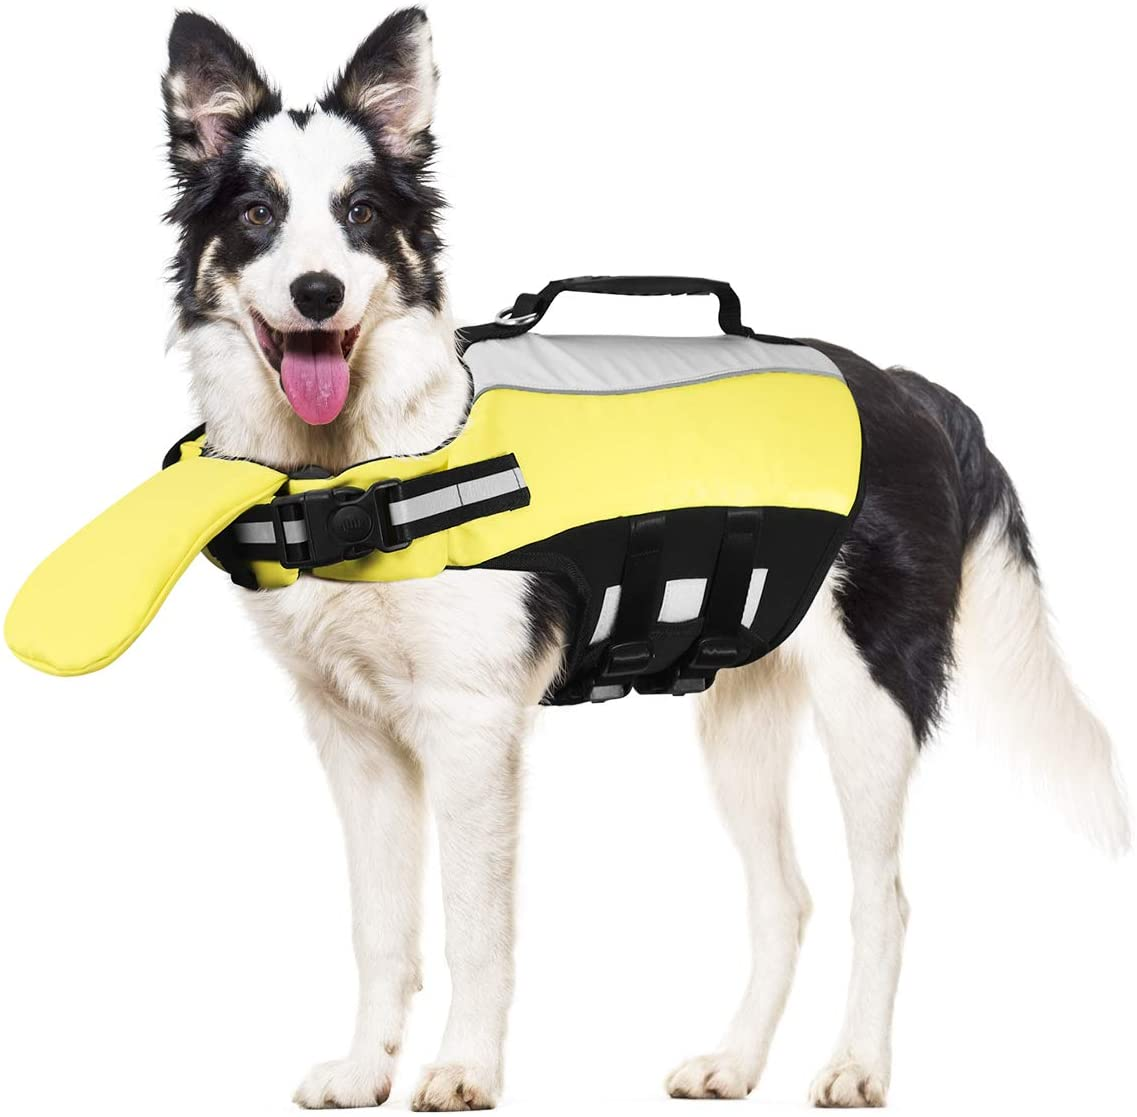 POPETPOP Dog Life Jacket for Swimming - Pet Float Coat Reflective Dog Vest Saver Swimsuit Preserver with Padding for Small, Middle, Large Dogs